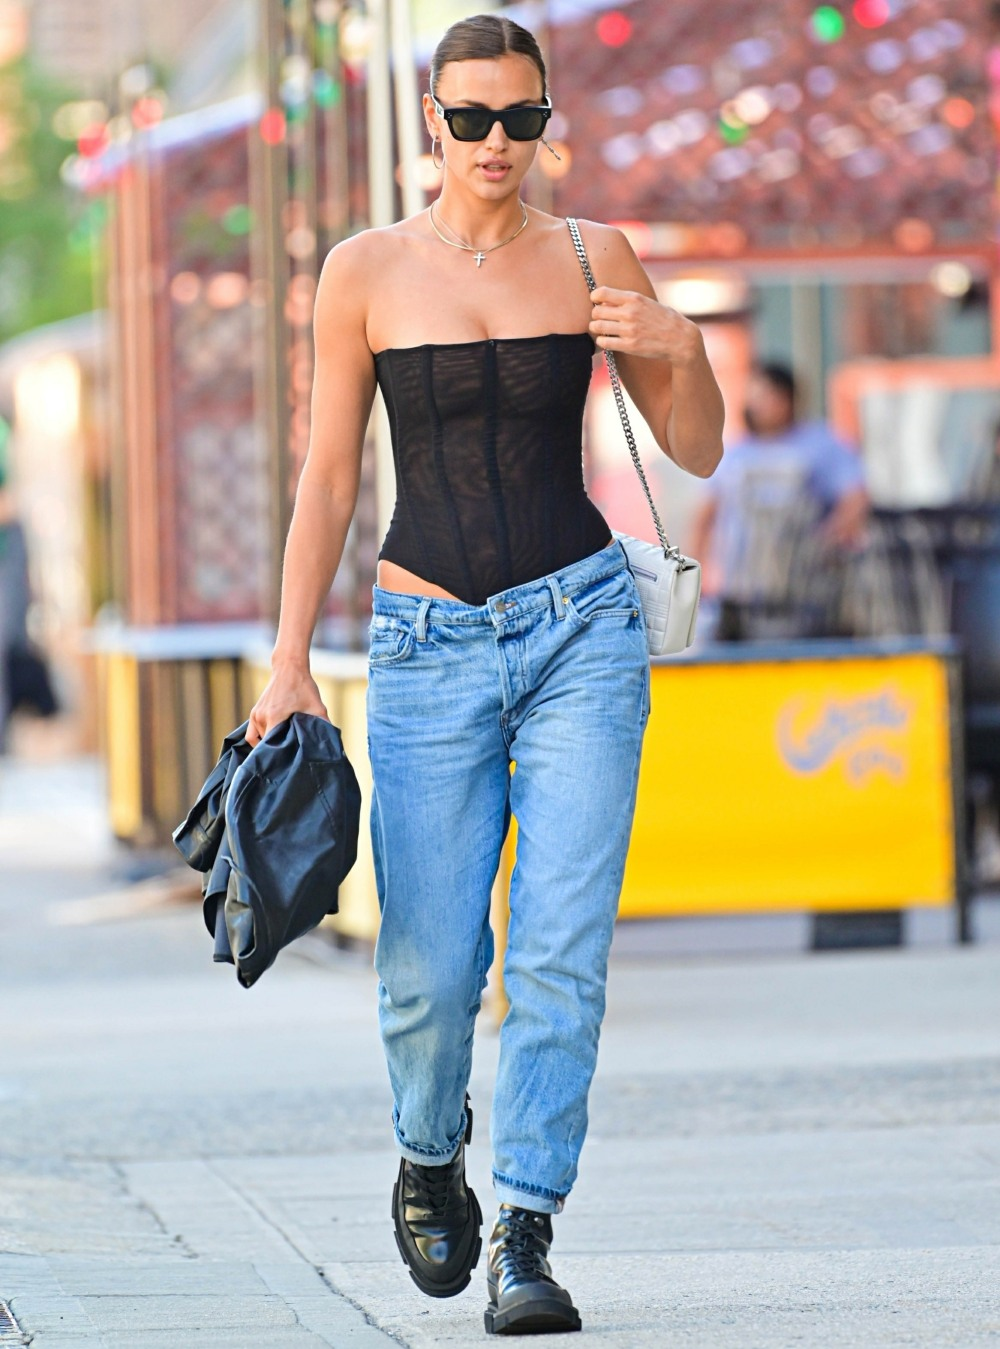 Irina Shayk puts her model hips on display wearing a sexy laced bodysuit